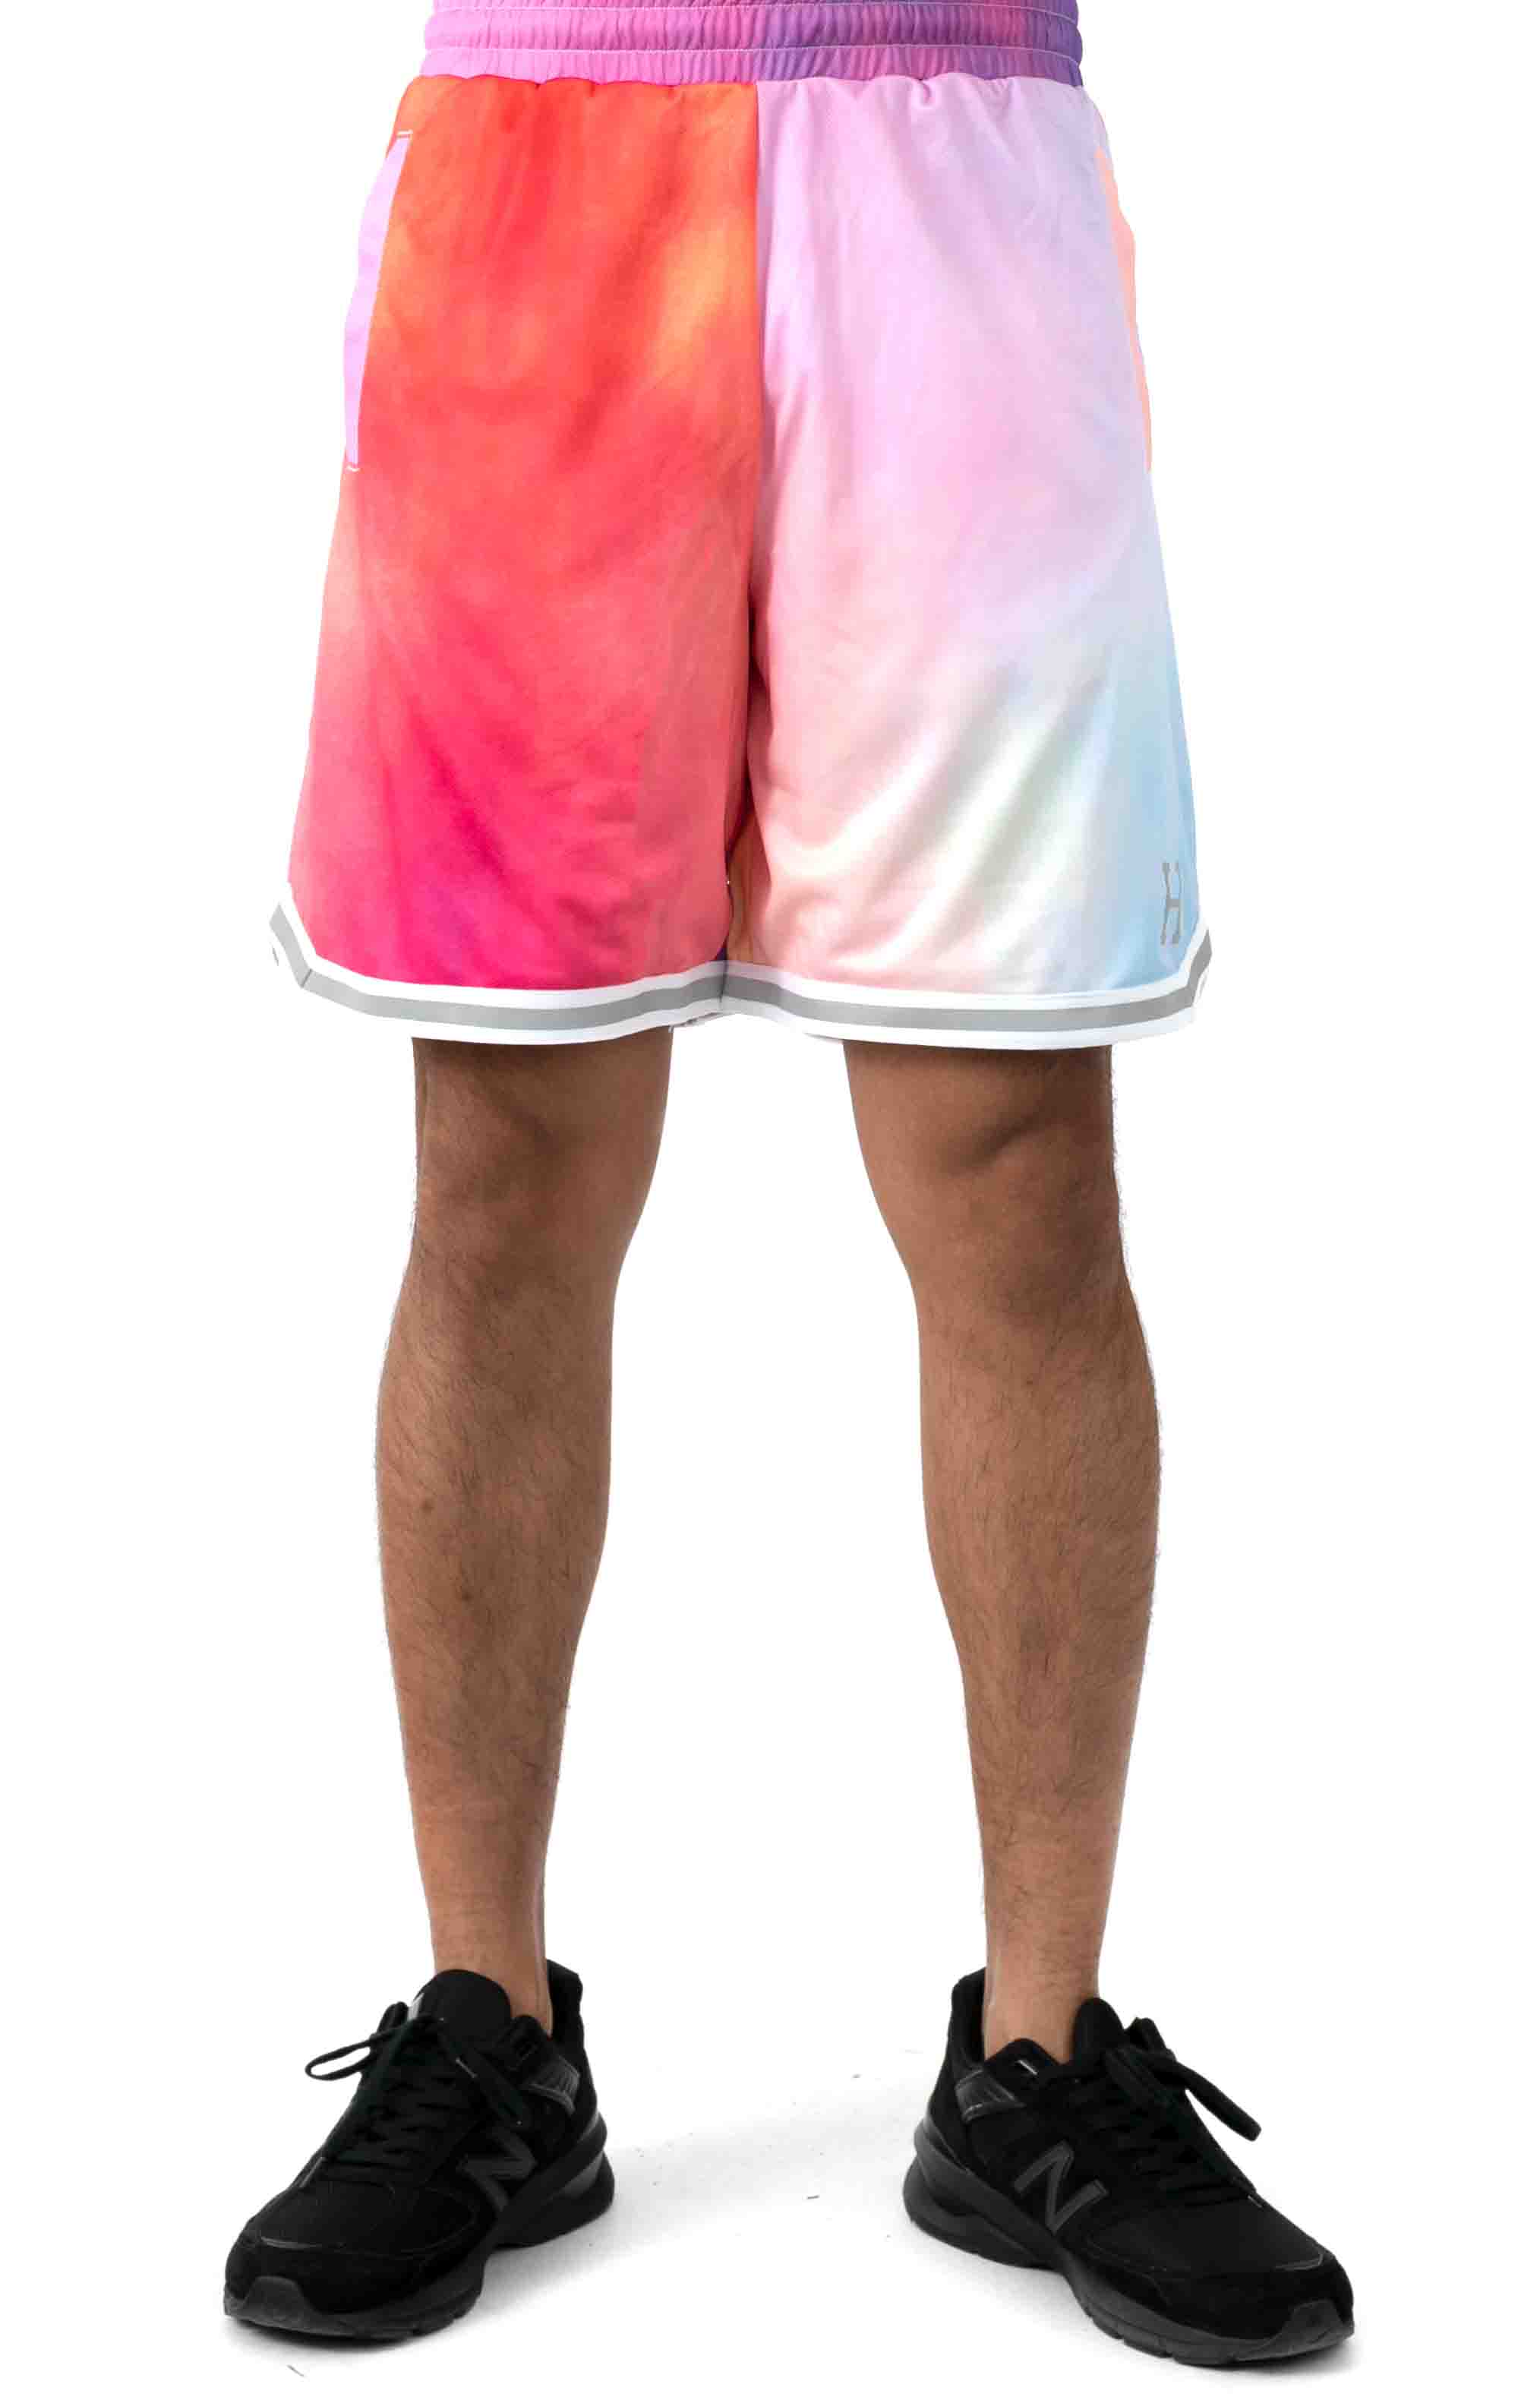 Classic H Reflex Basketball Shorts - Coral Pink 2